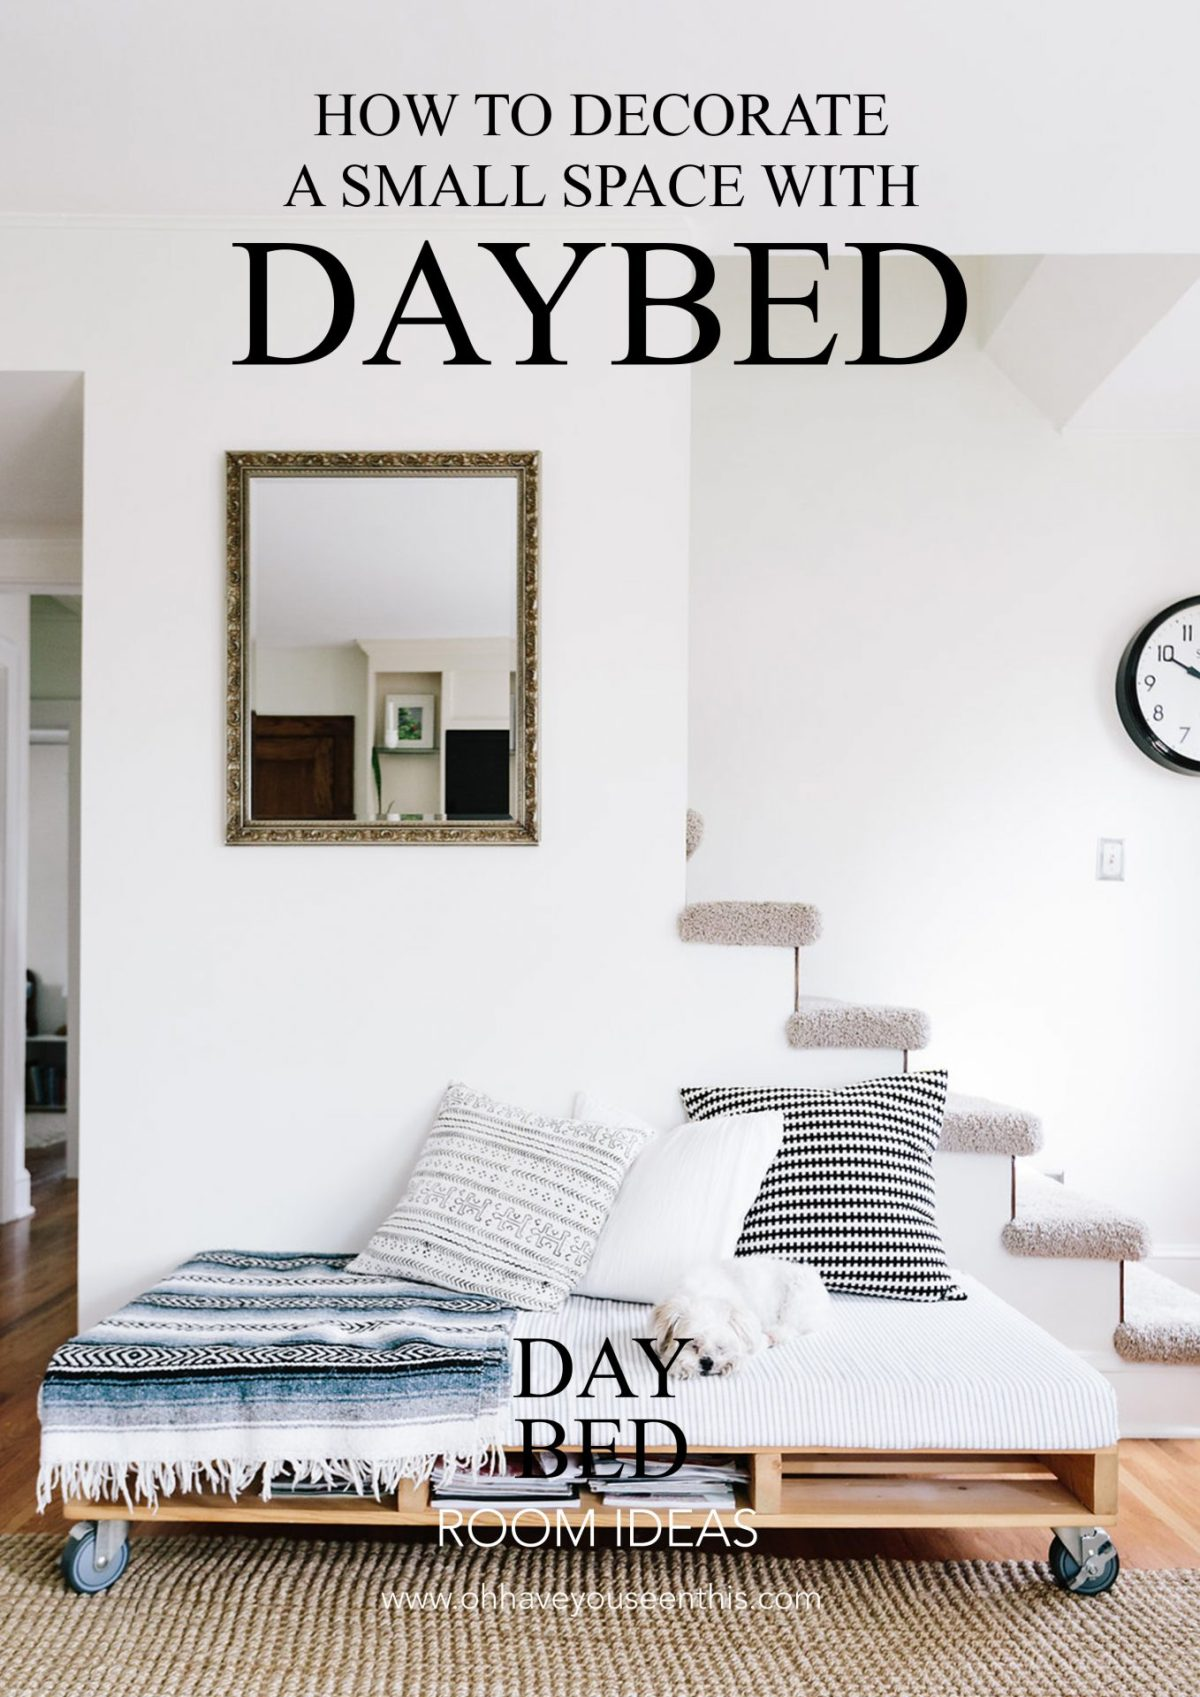 How to Decorate a Small Space with a Daybed